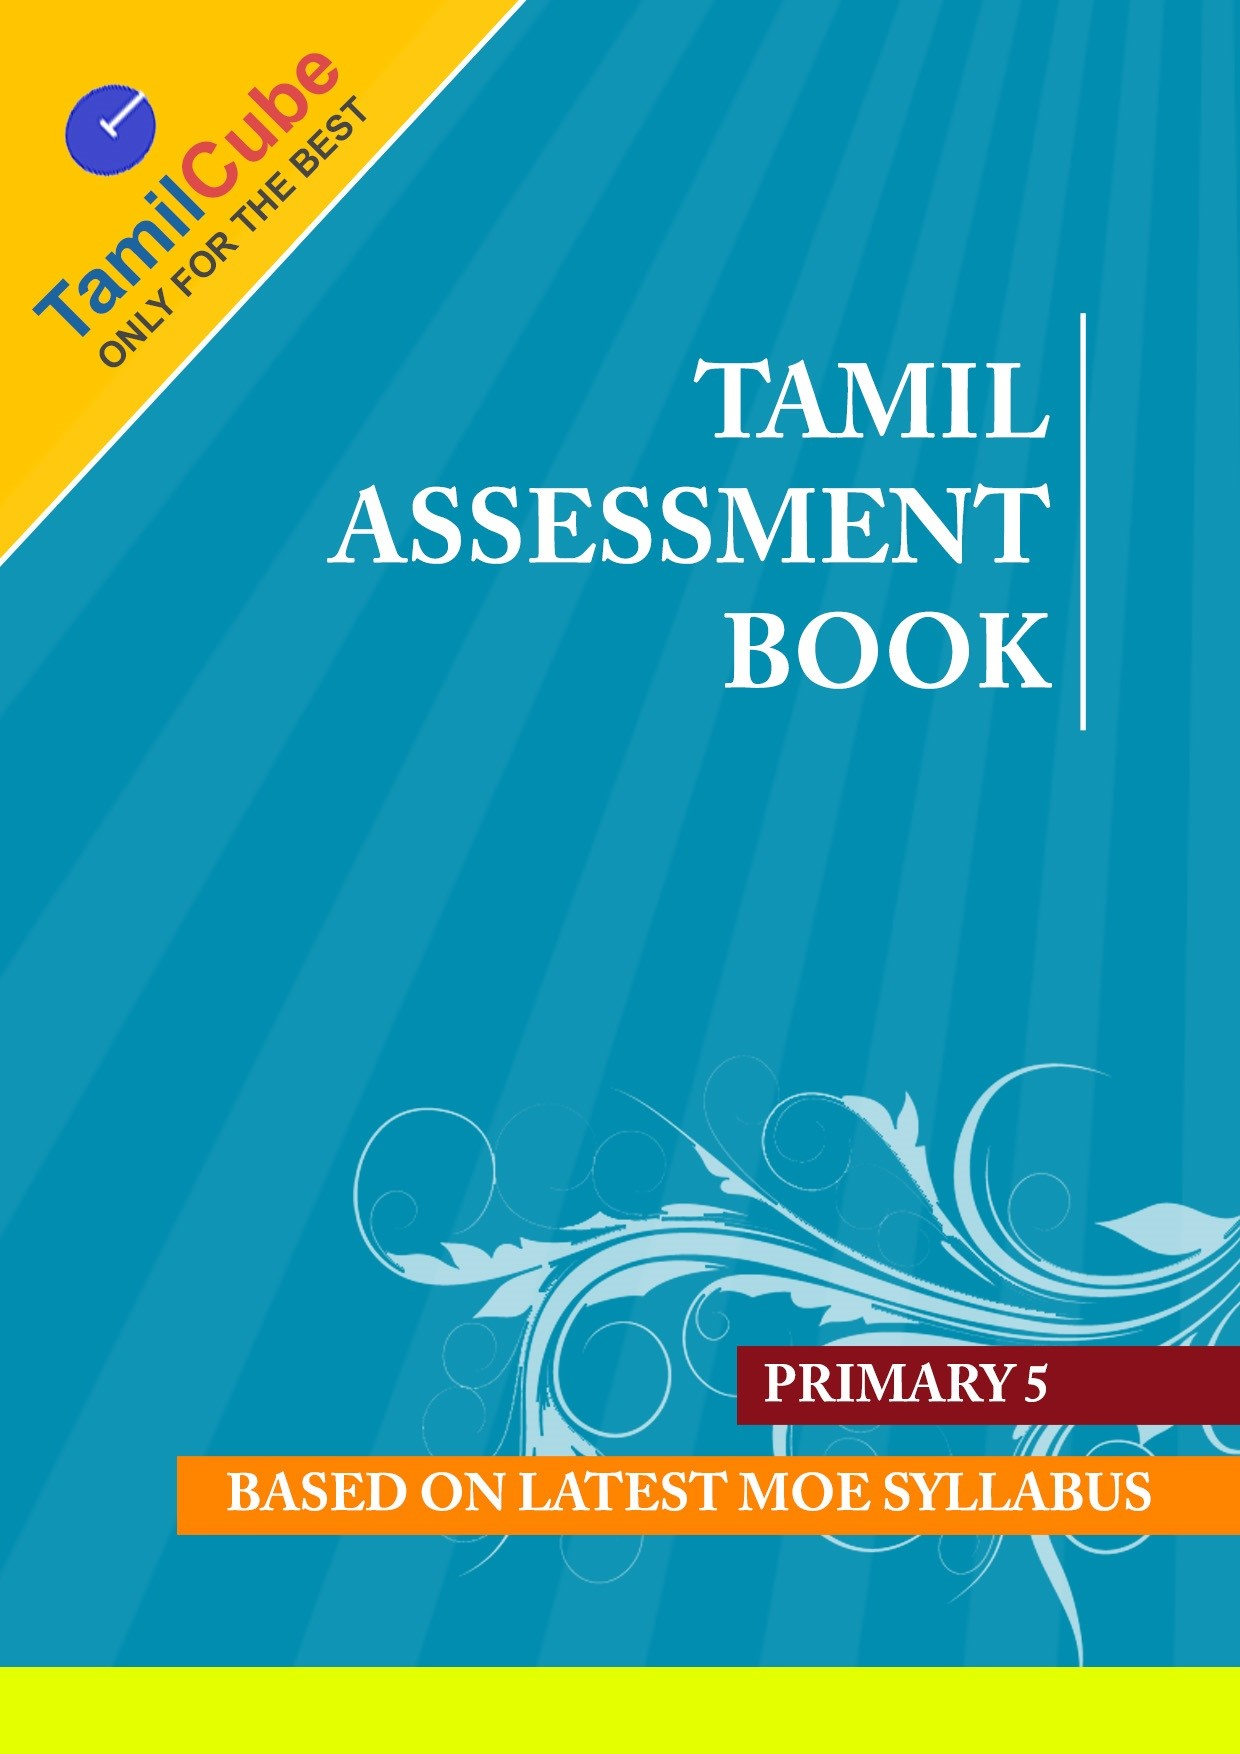 All Tamil books and resources | Tamilcube Shop